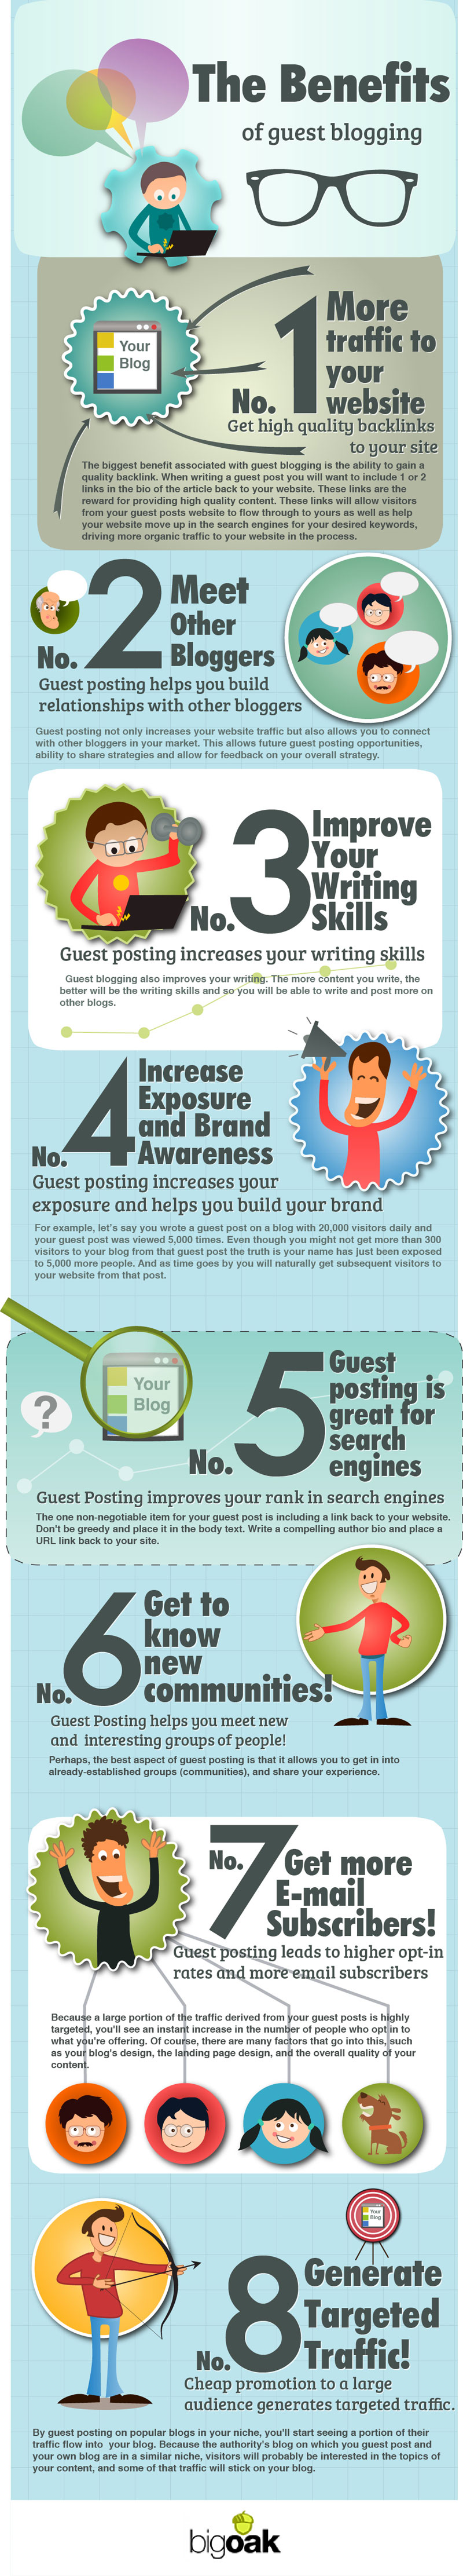 9 Benefits of Guest Blogging for SEO